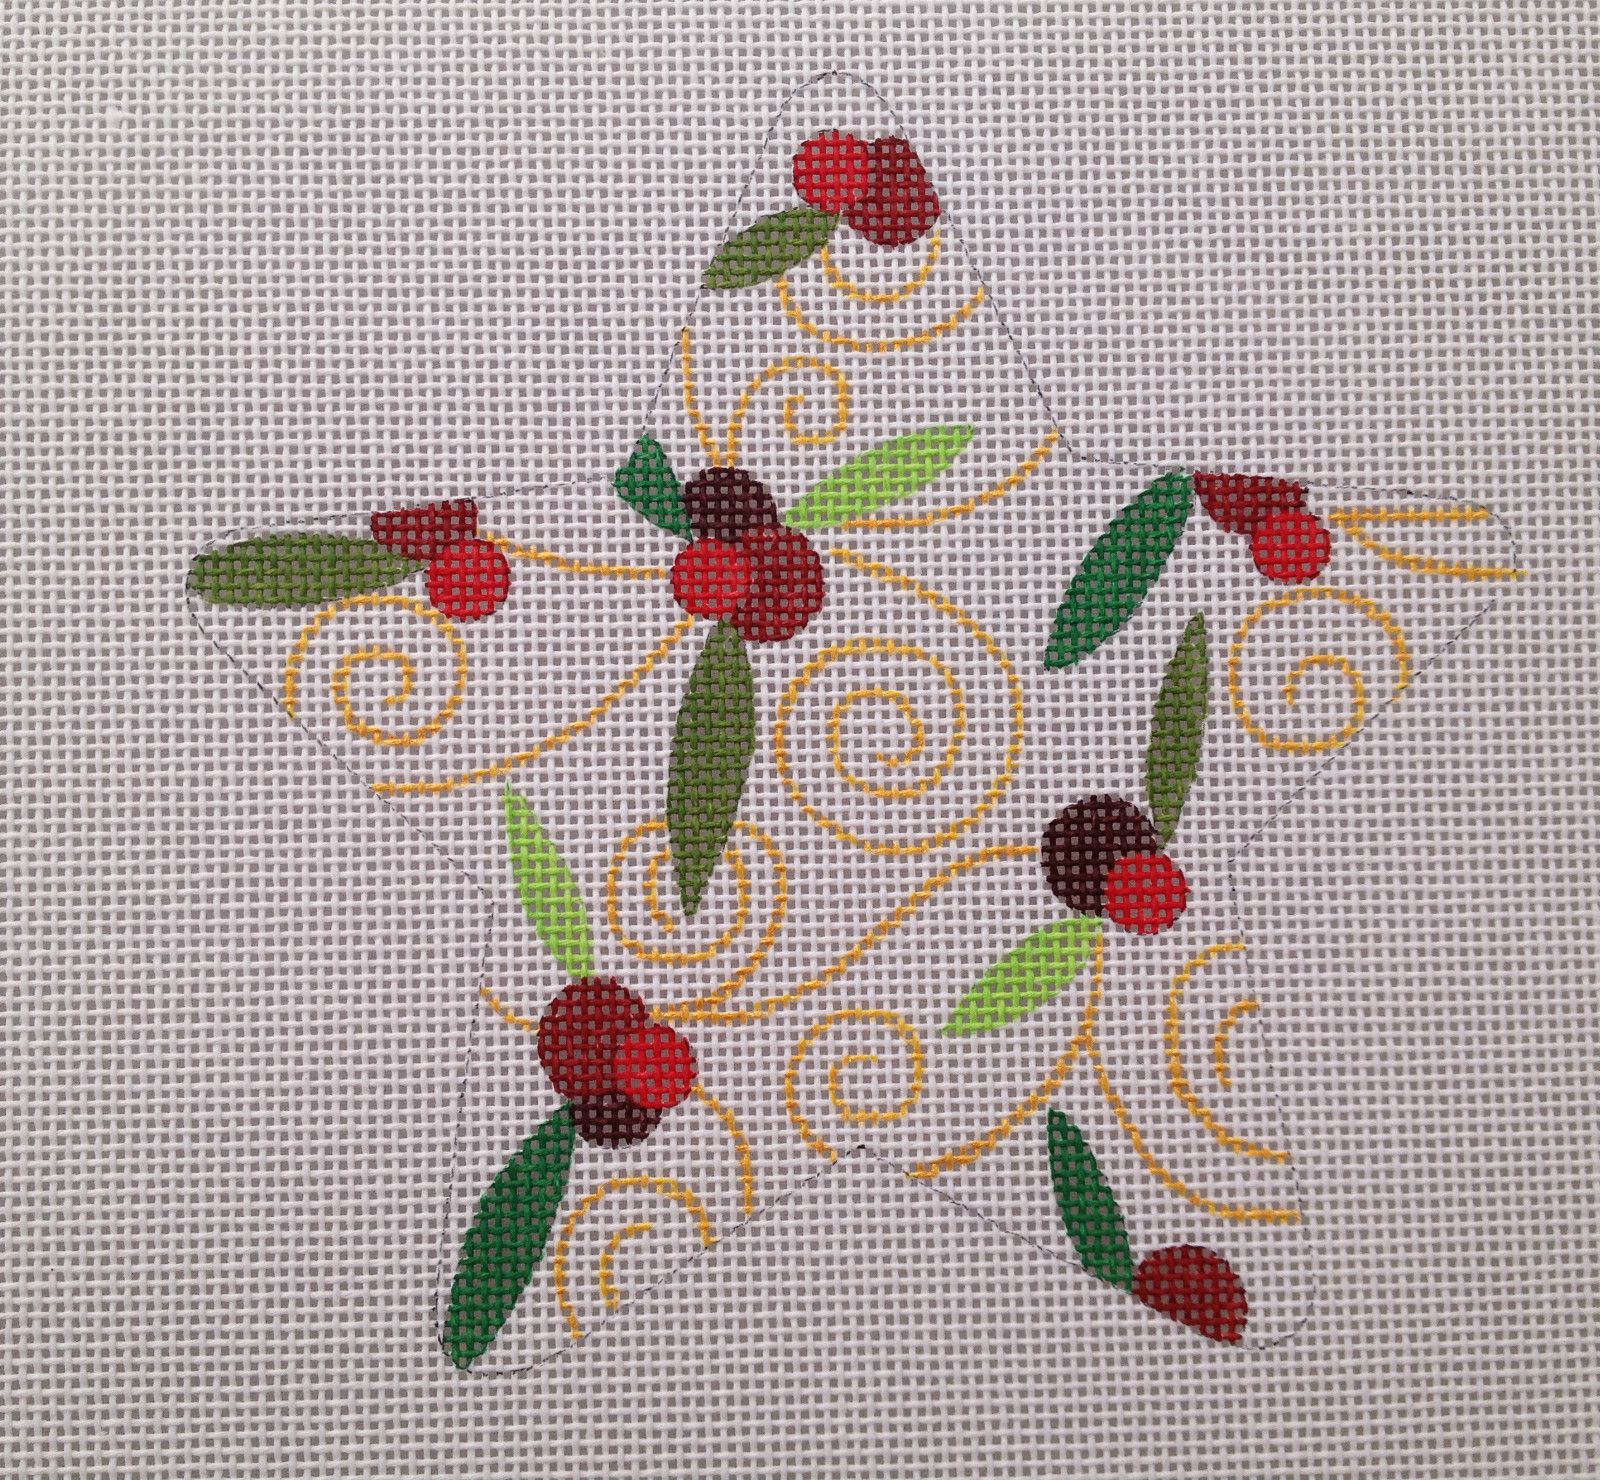 Holly Berry Star Hand Painted Needlepoint Canvas 18ct BY Raymond Crawford | eBay